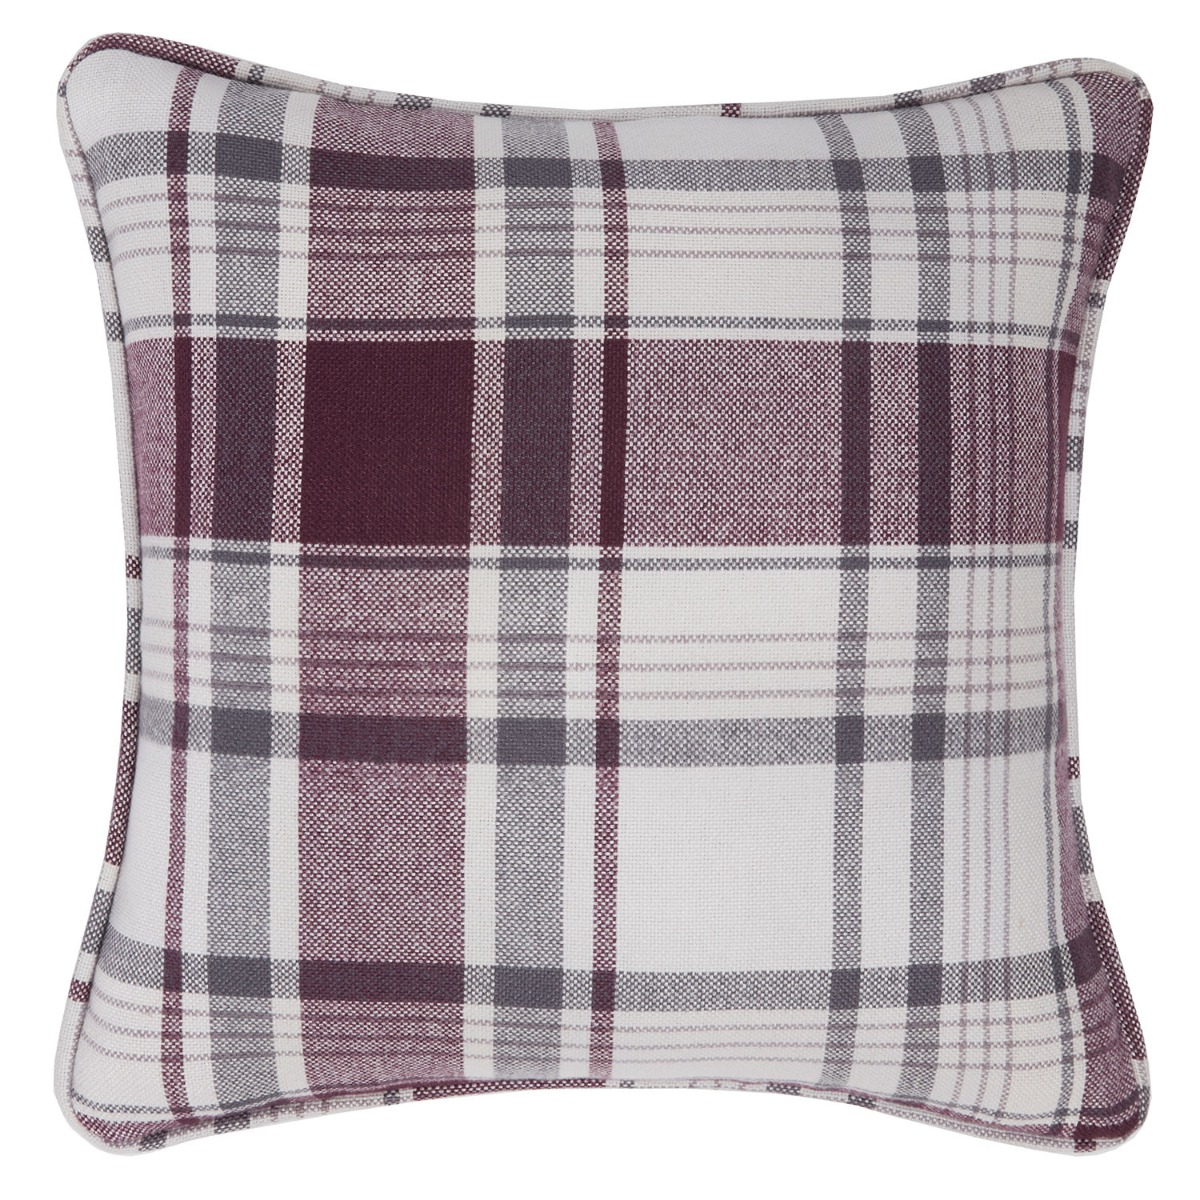 Balmoral Plum Check Filled Square Cushion